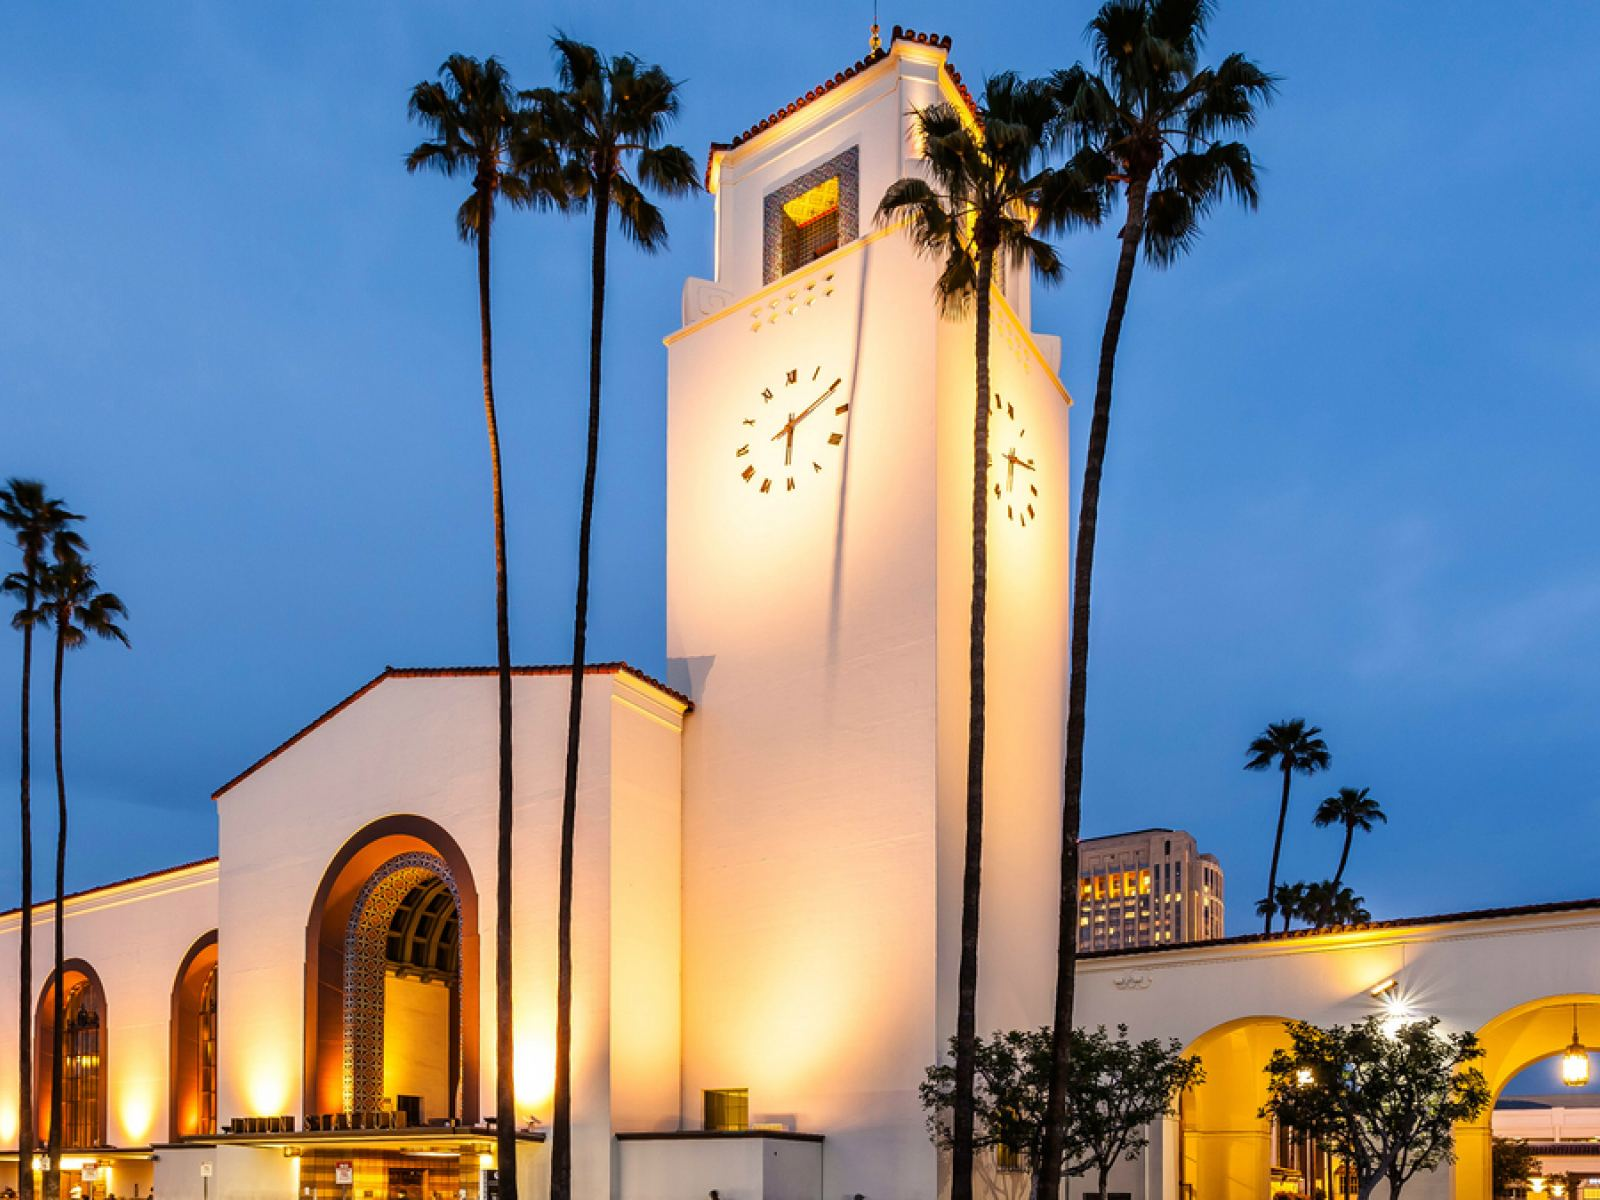 Main image for article titled Union Station: The Story of an L.A. Icon